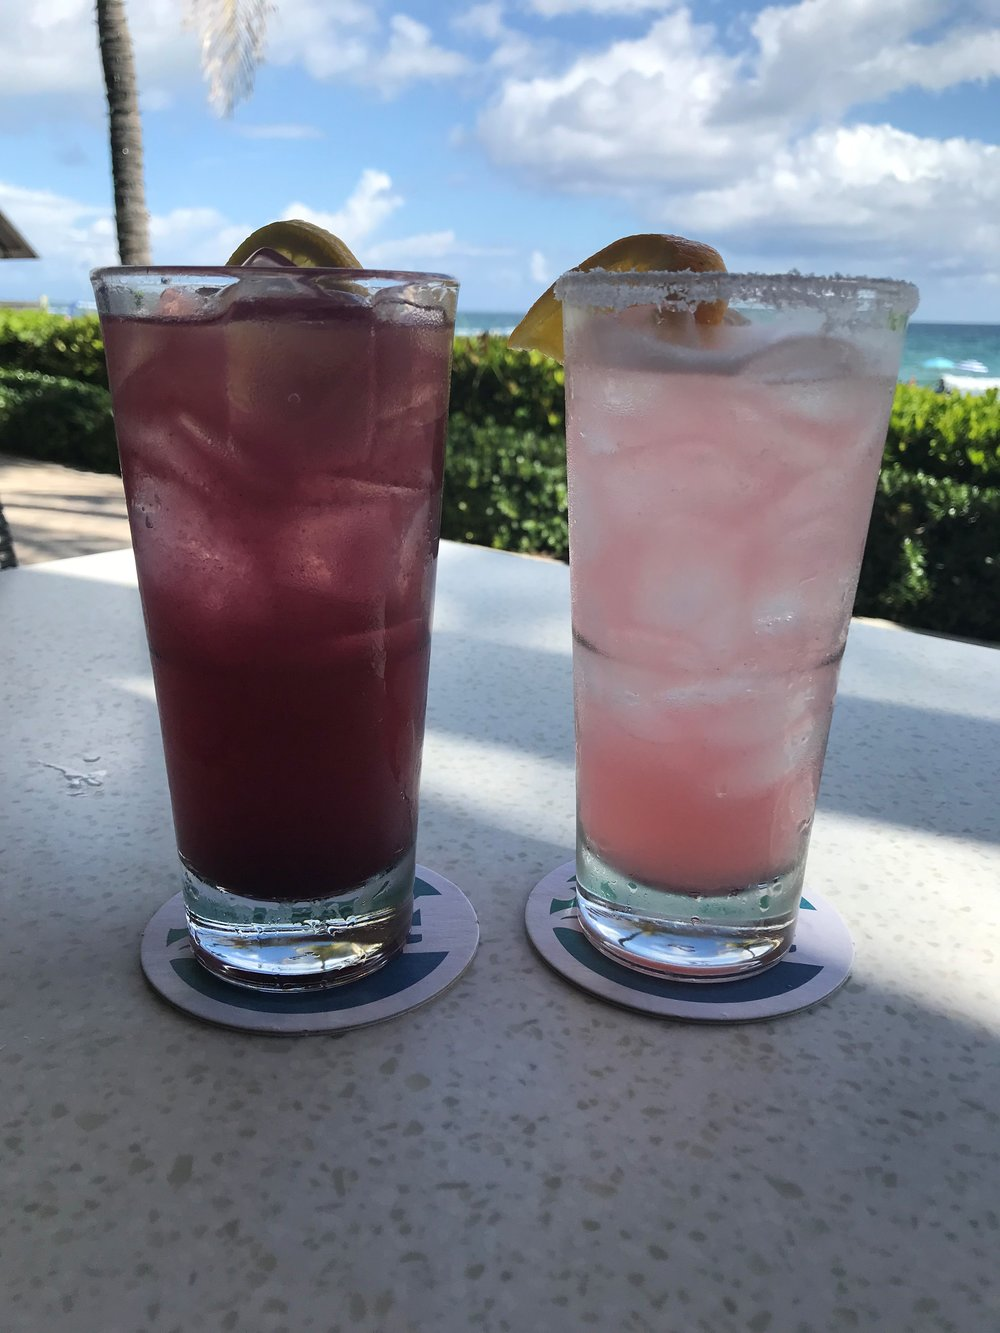 Oceans 234 Cocktails Deerfield Beach